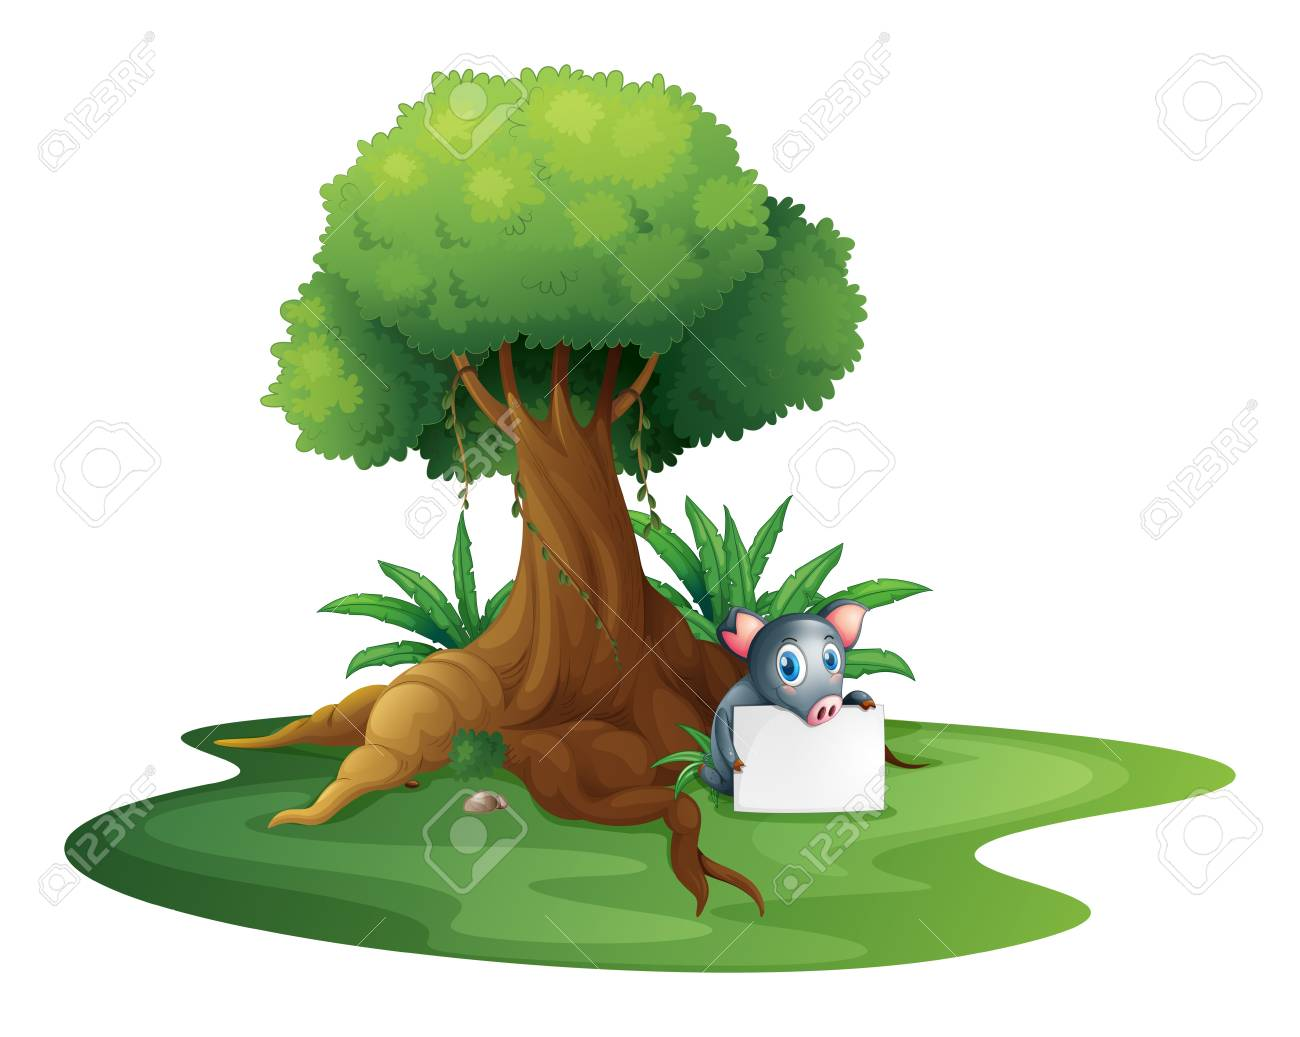 Illustration of a pig holding a signage under the tree on a white background Stock Vector - 18981137